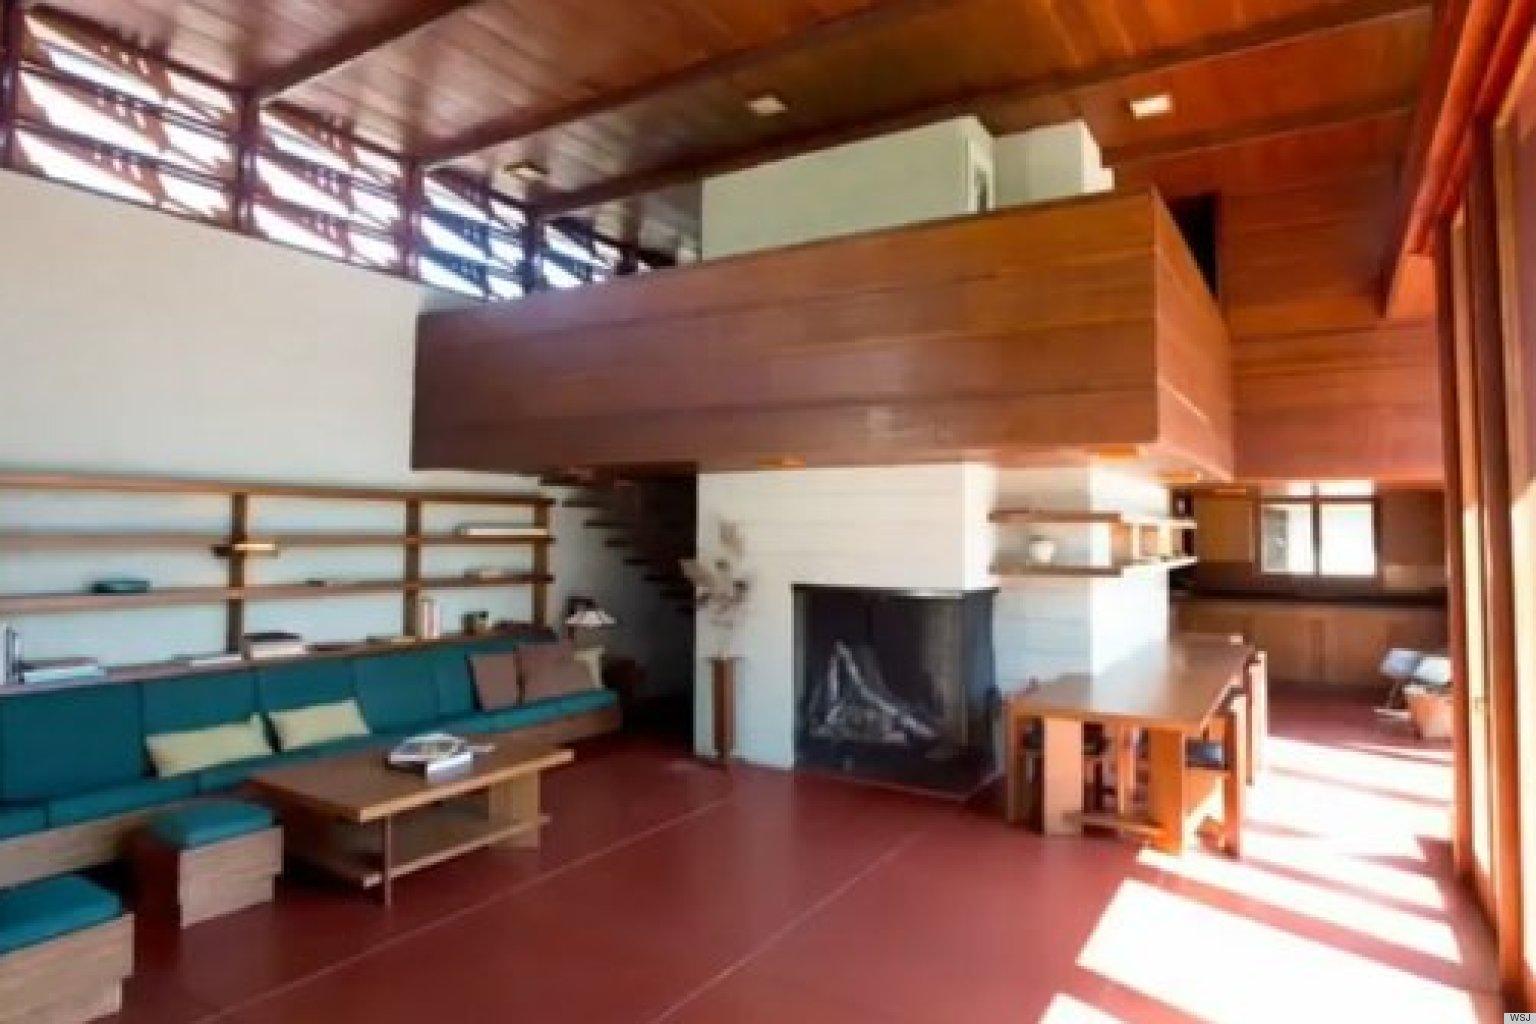 Frank Lloyd Wright Interior Design Are Frank Lloyd Wrightdesigned Houses More Hassle Than They're